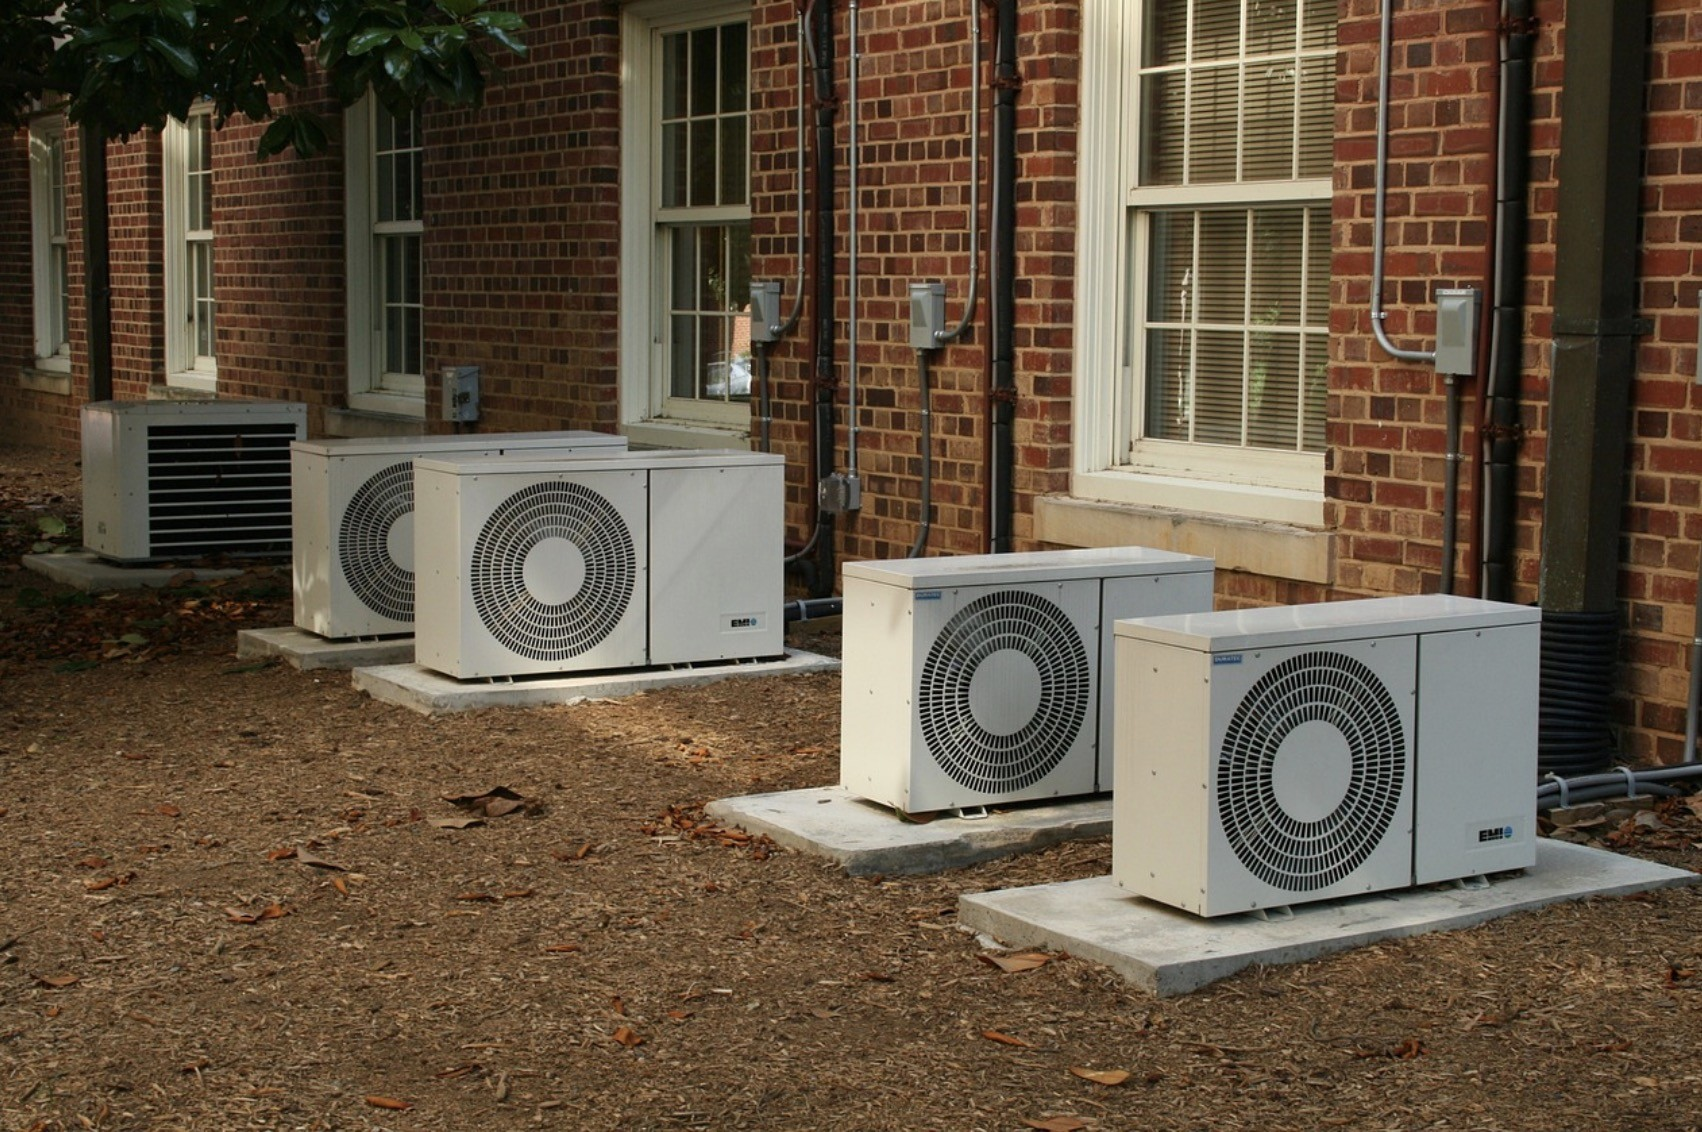 ac units of building